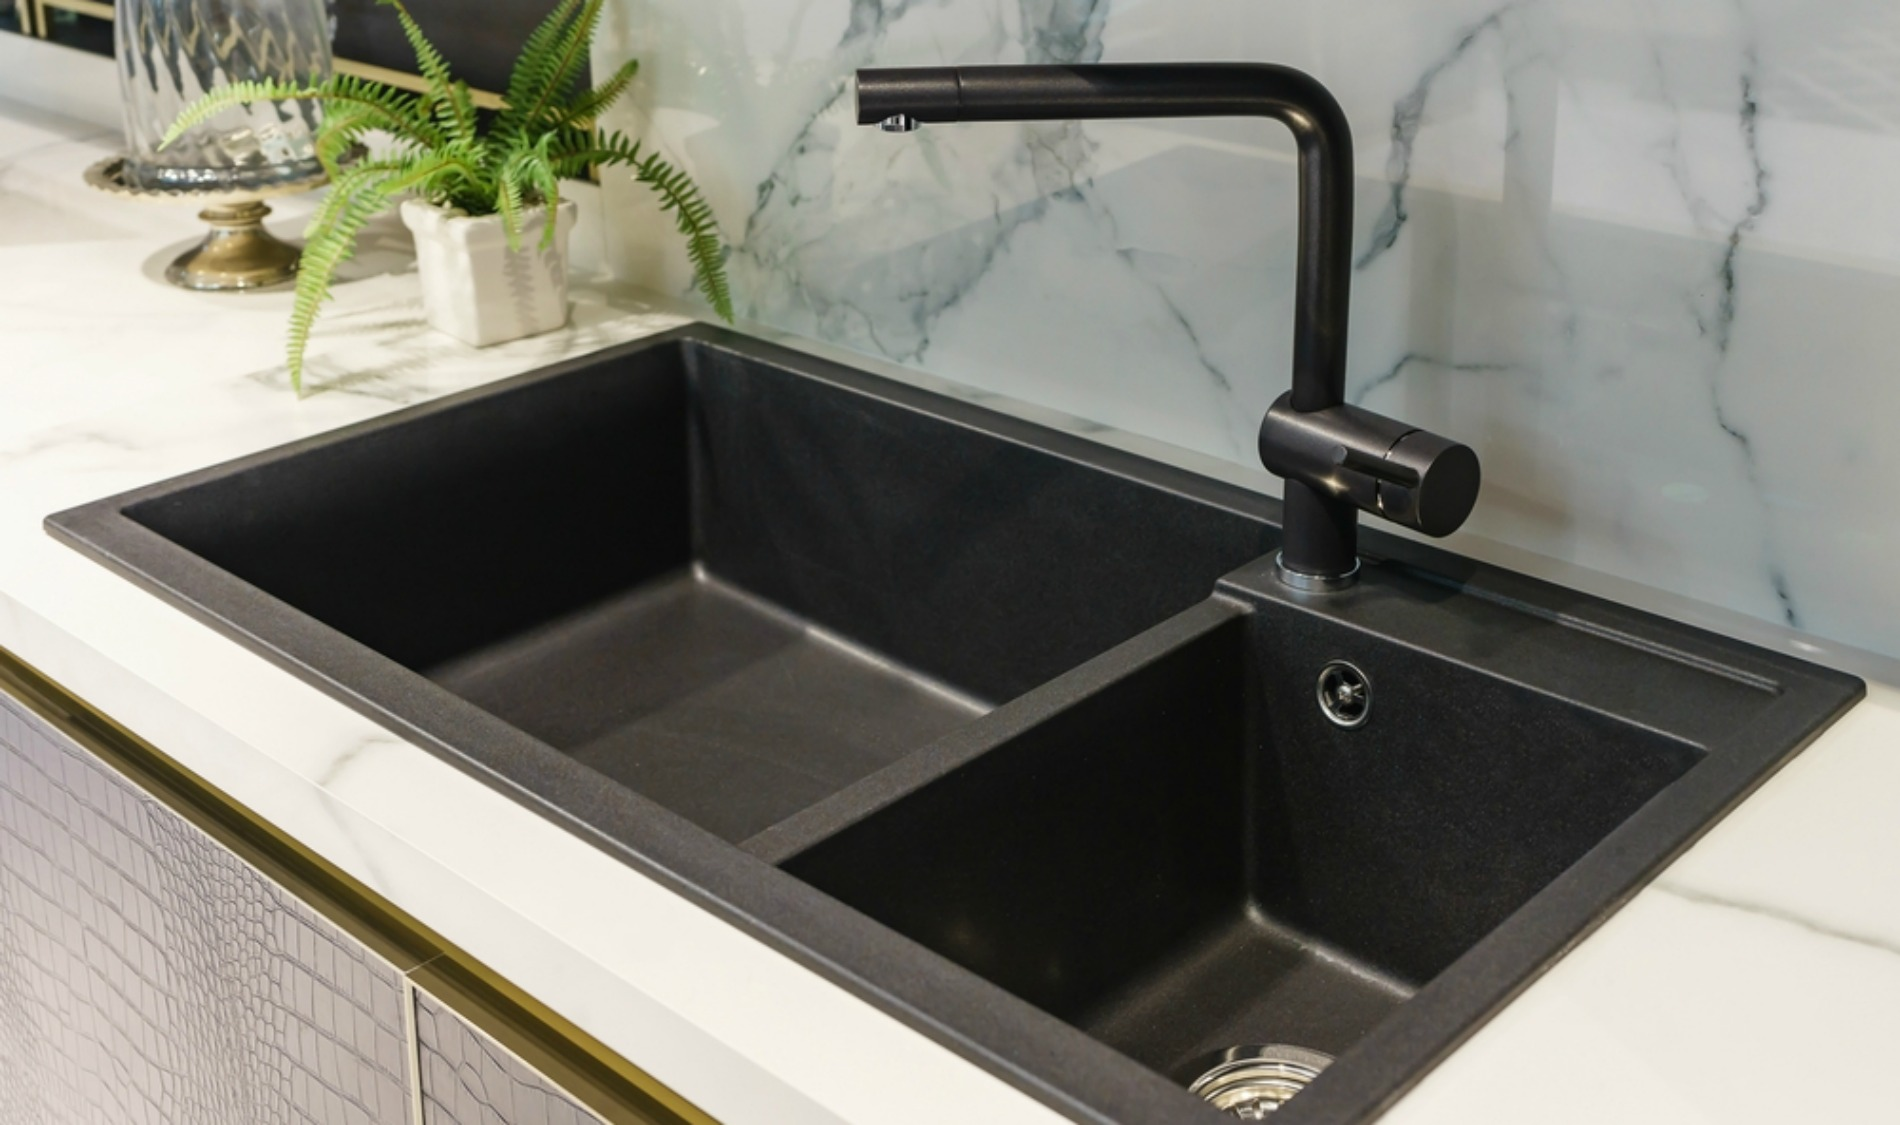 What You Need to Know When Buying a Black Kitchen Sink